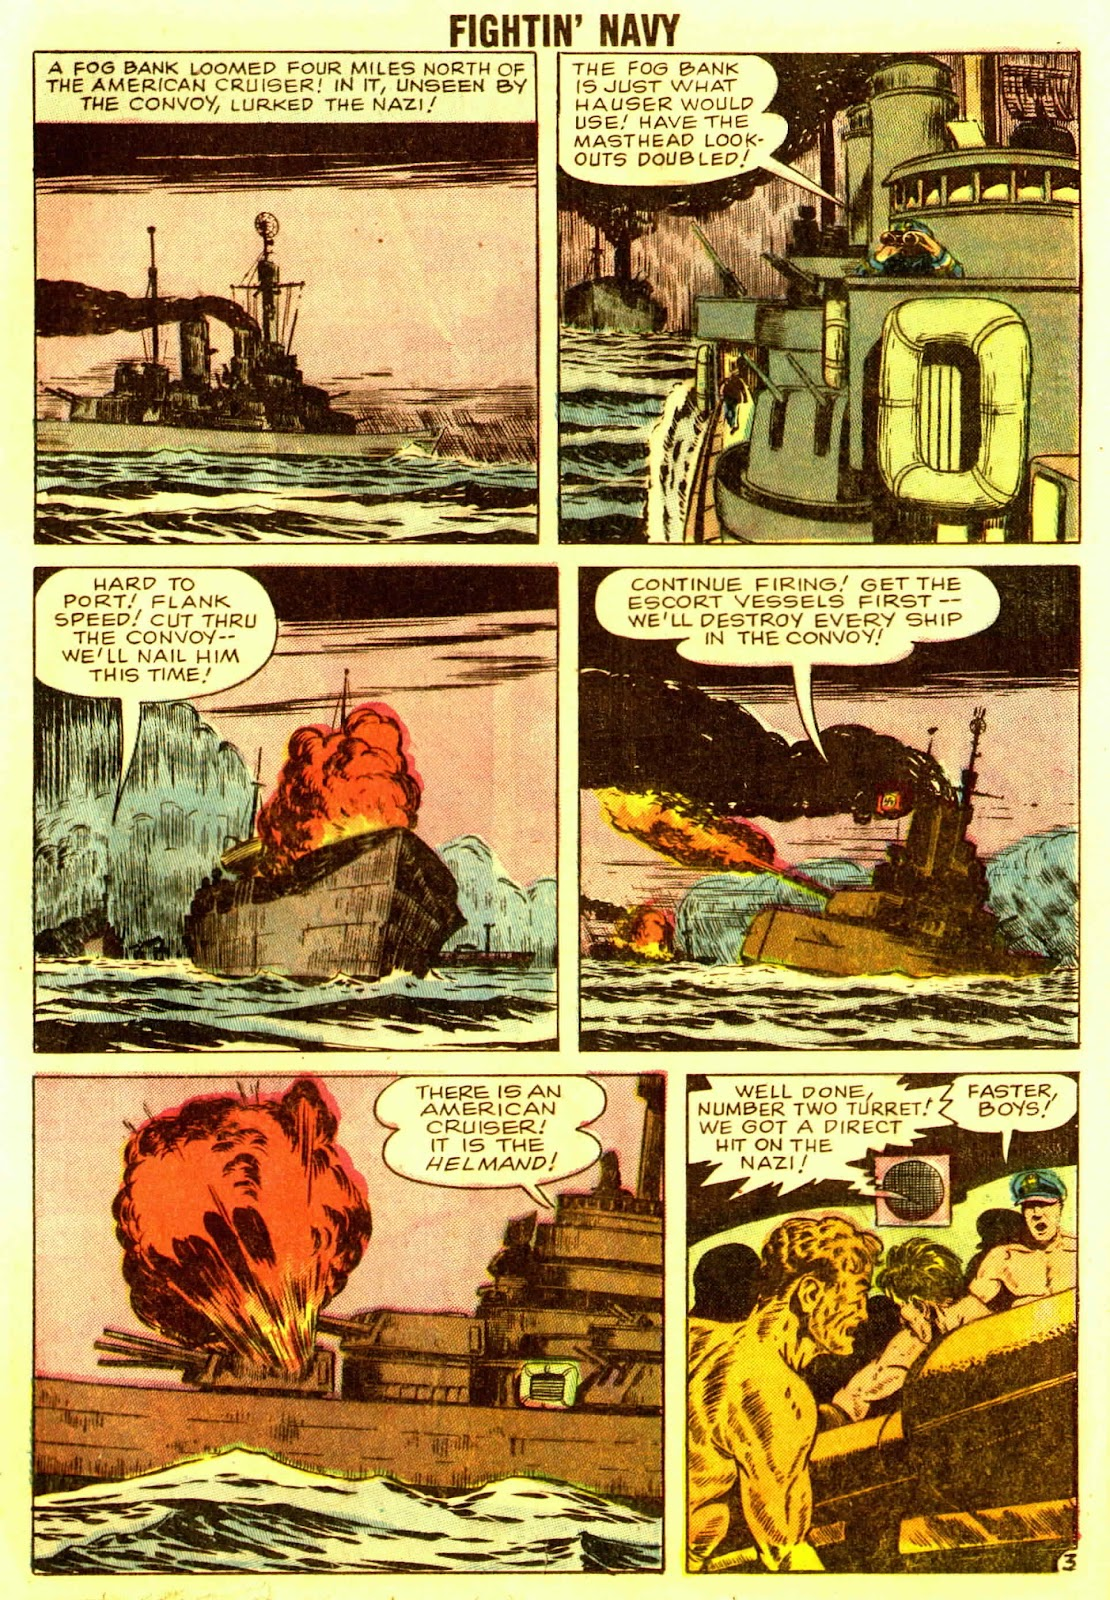 Read online Fightin' Navy comic -  Issue #83 - 77